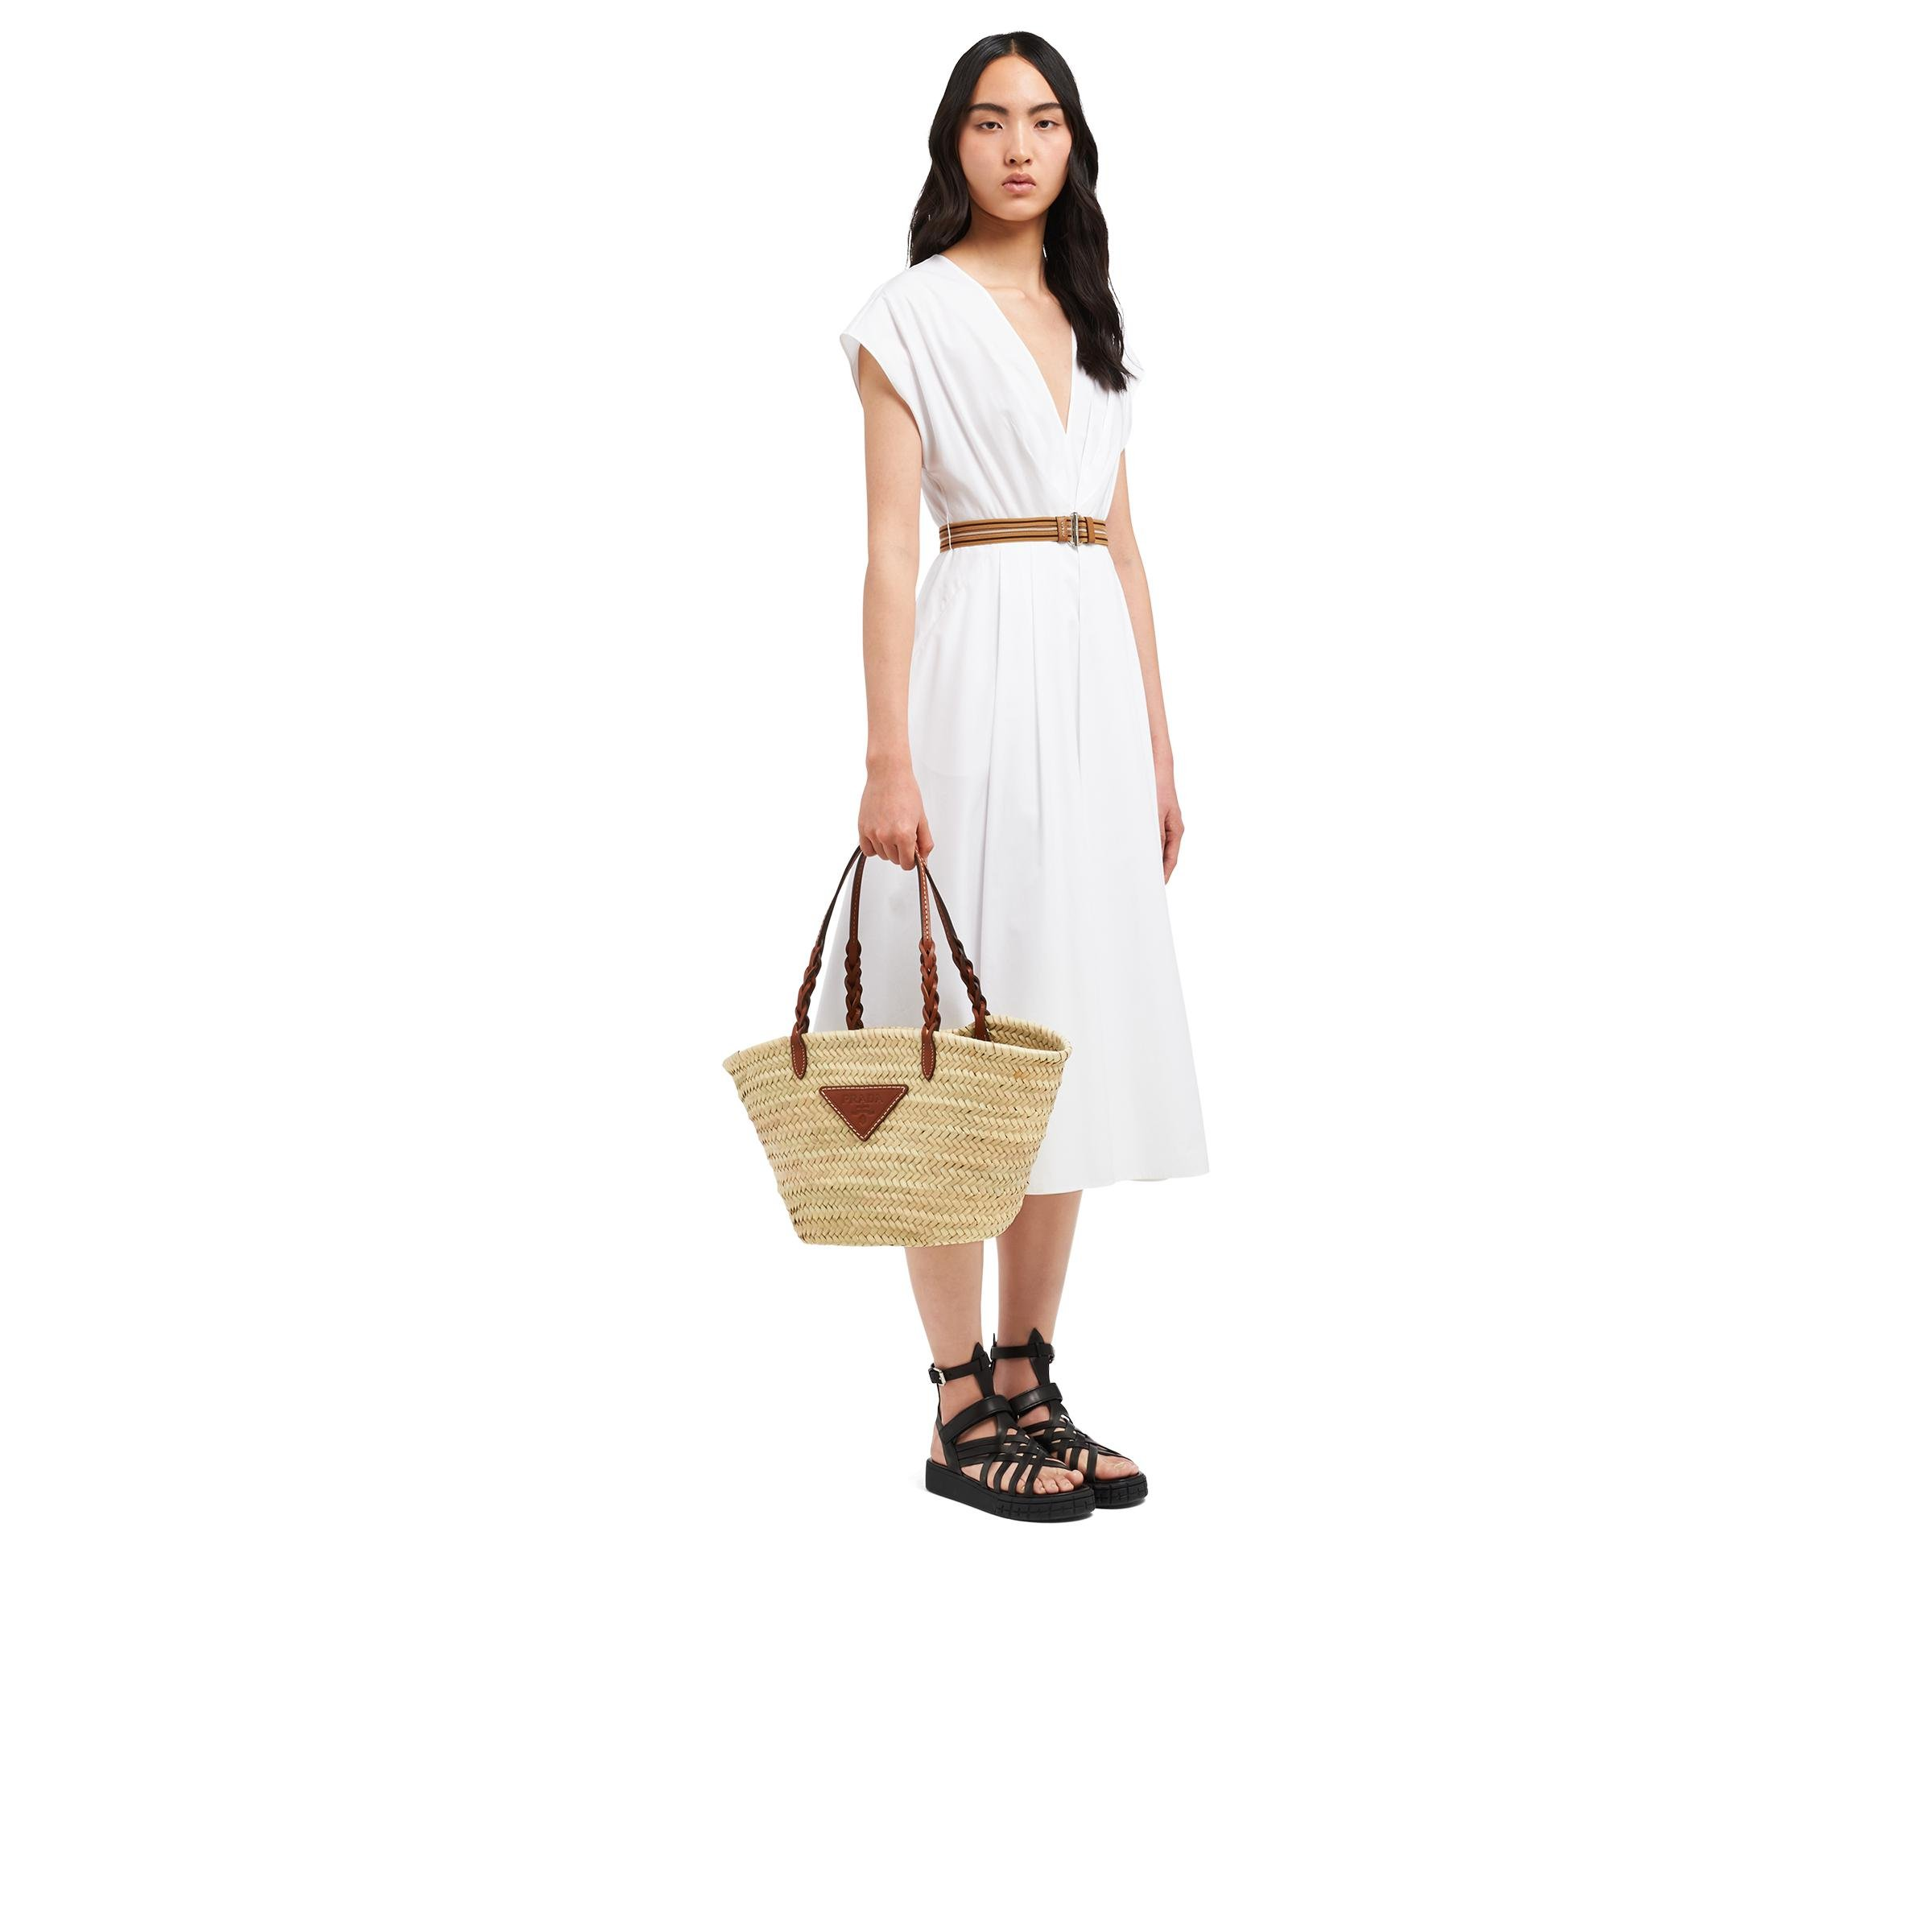 Woven Palm And Leather Tote Women Beige/cognac 6